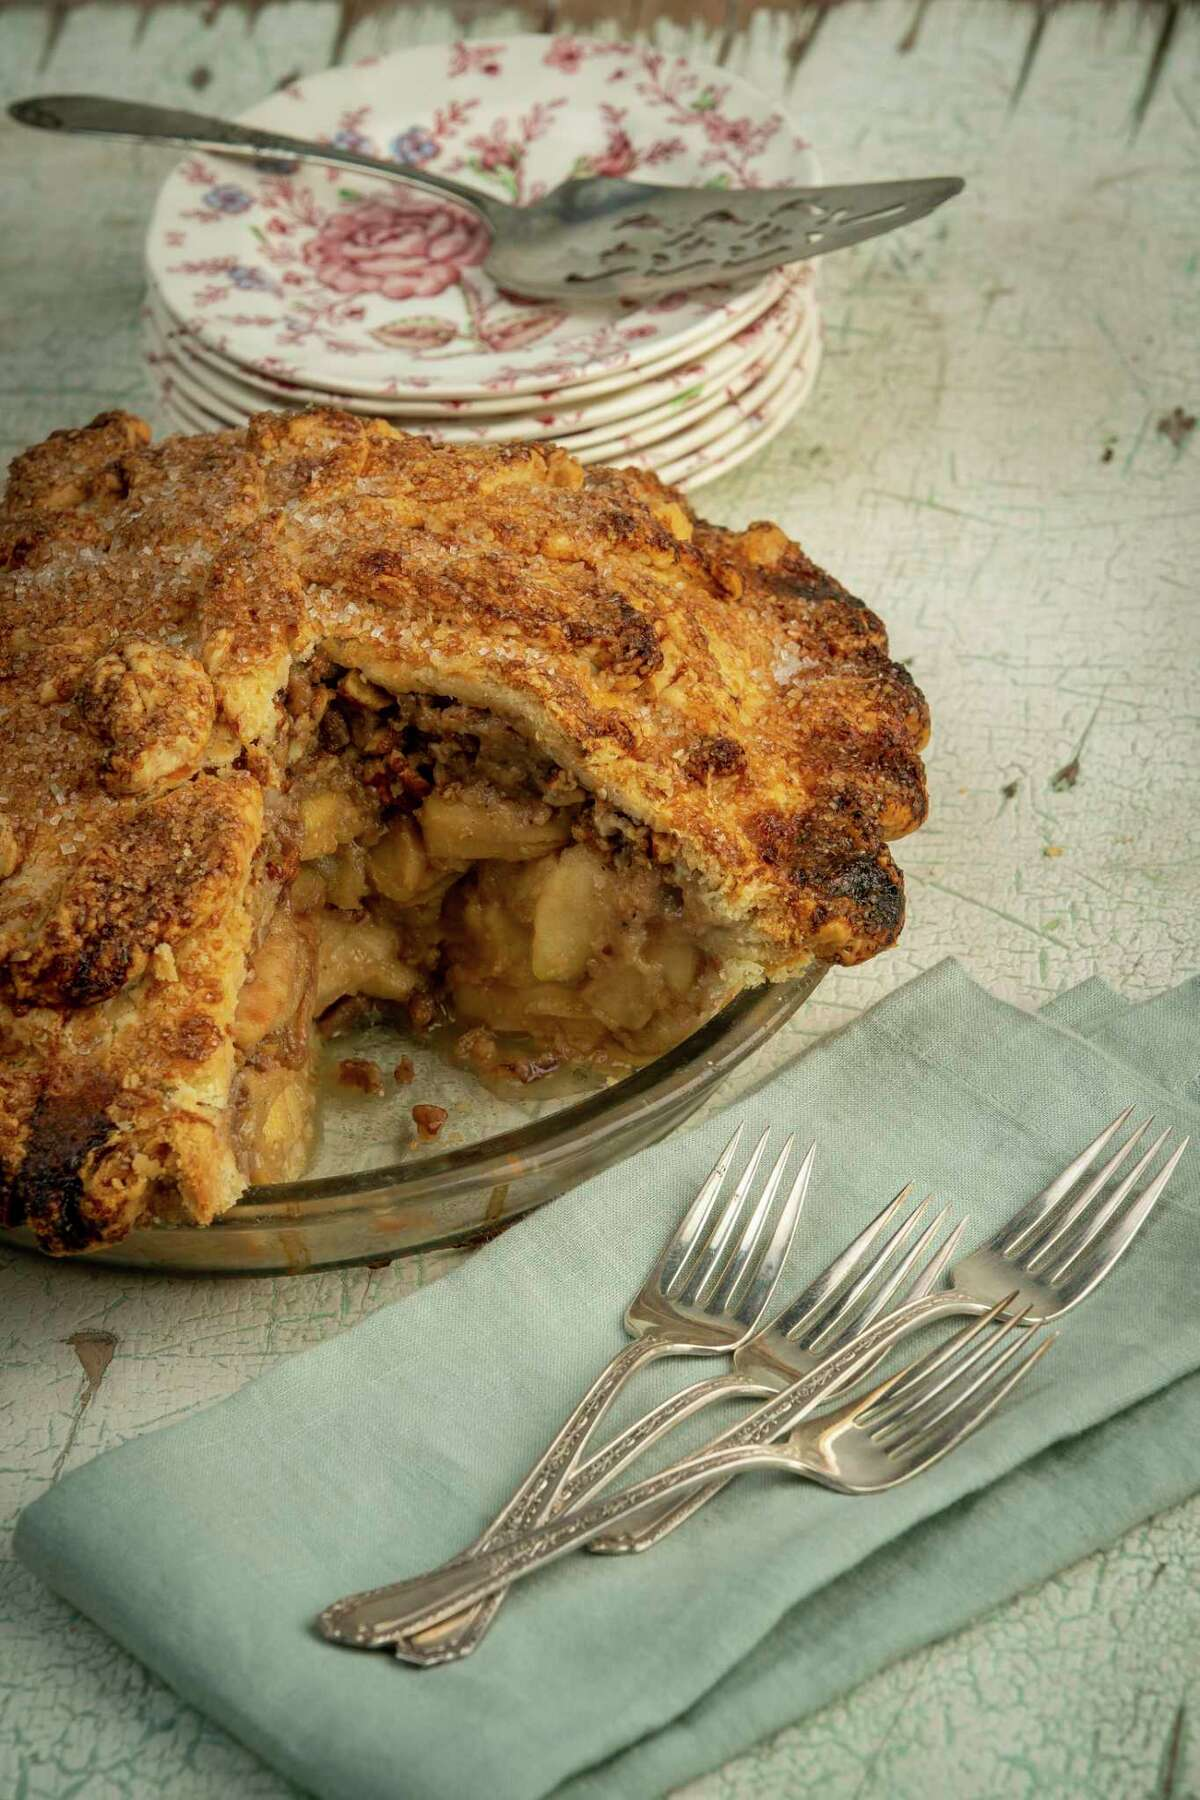 Maple Butter Apple Pie with Texas Pecan Praline by Jane Wild, executive chef The Dunlavy.